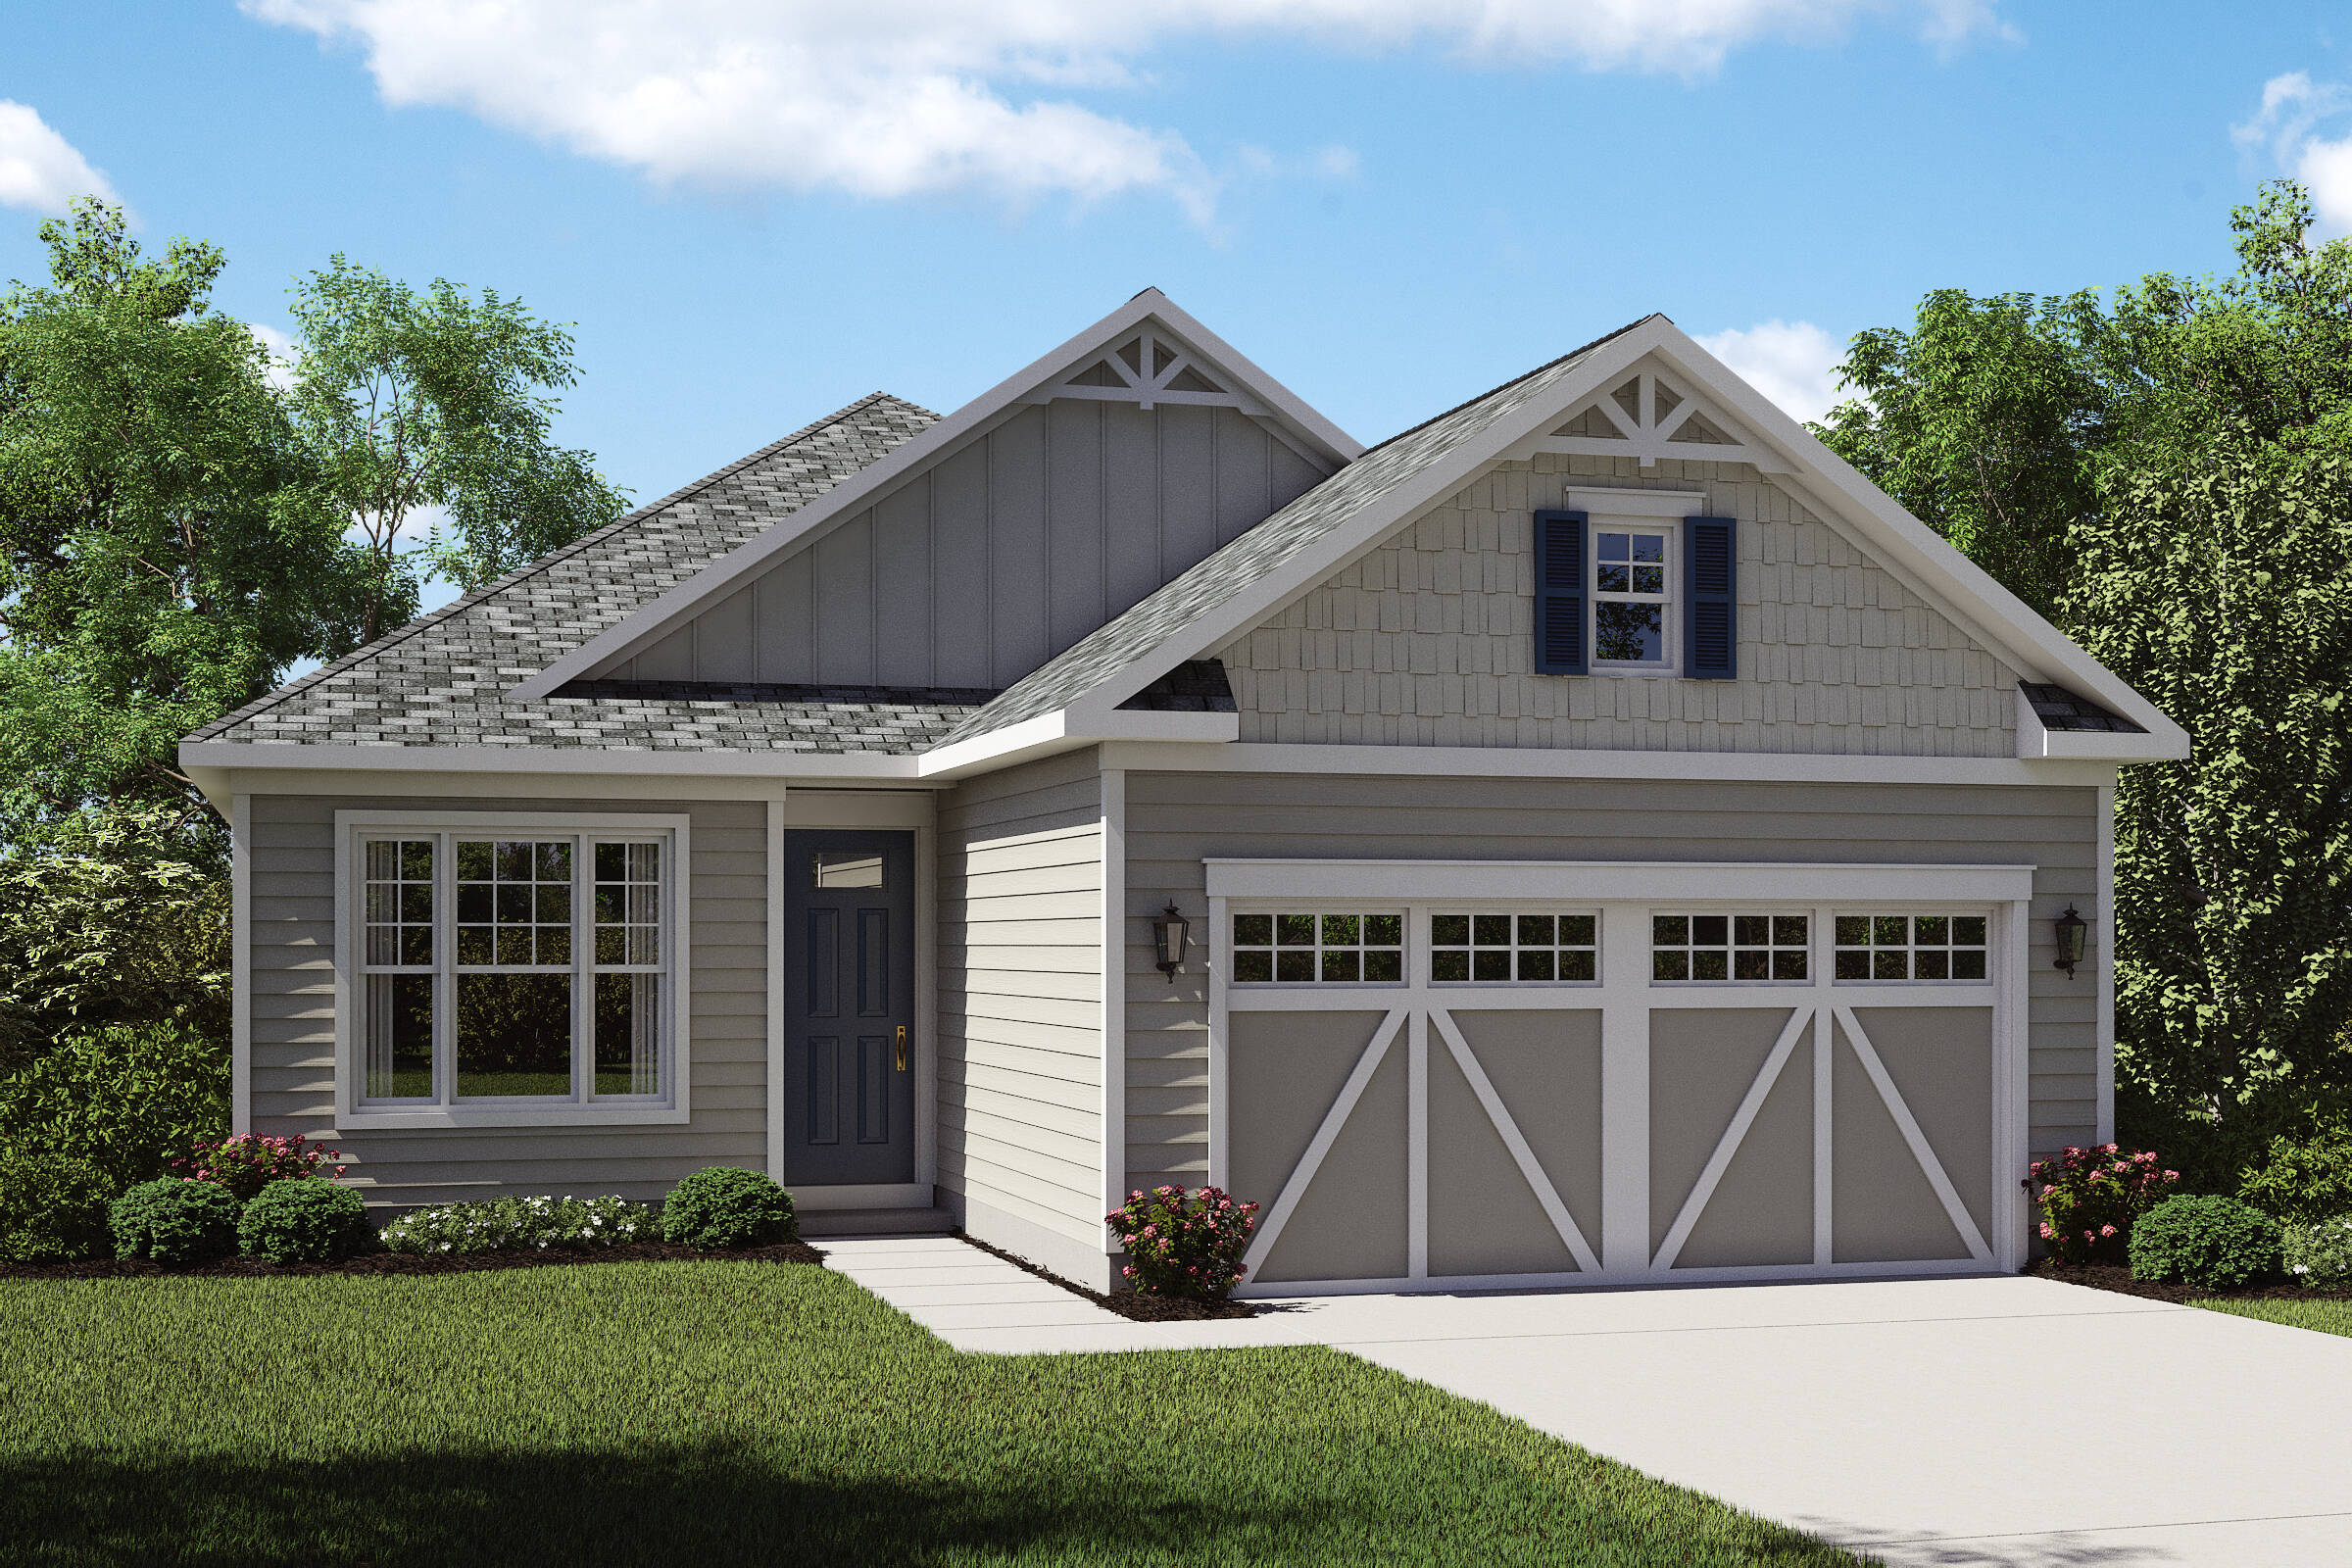 Grenada D2S New Homes Howell NJ · EBF_1479And4more · EBF_1444And4more ·  EBF_1504And4more